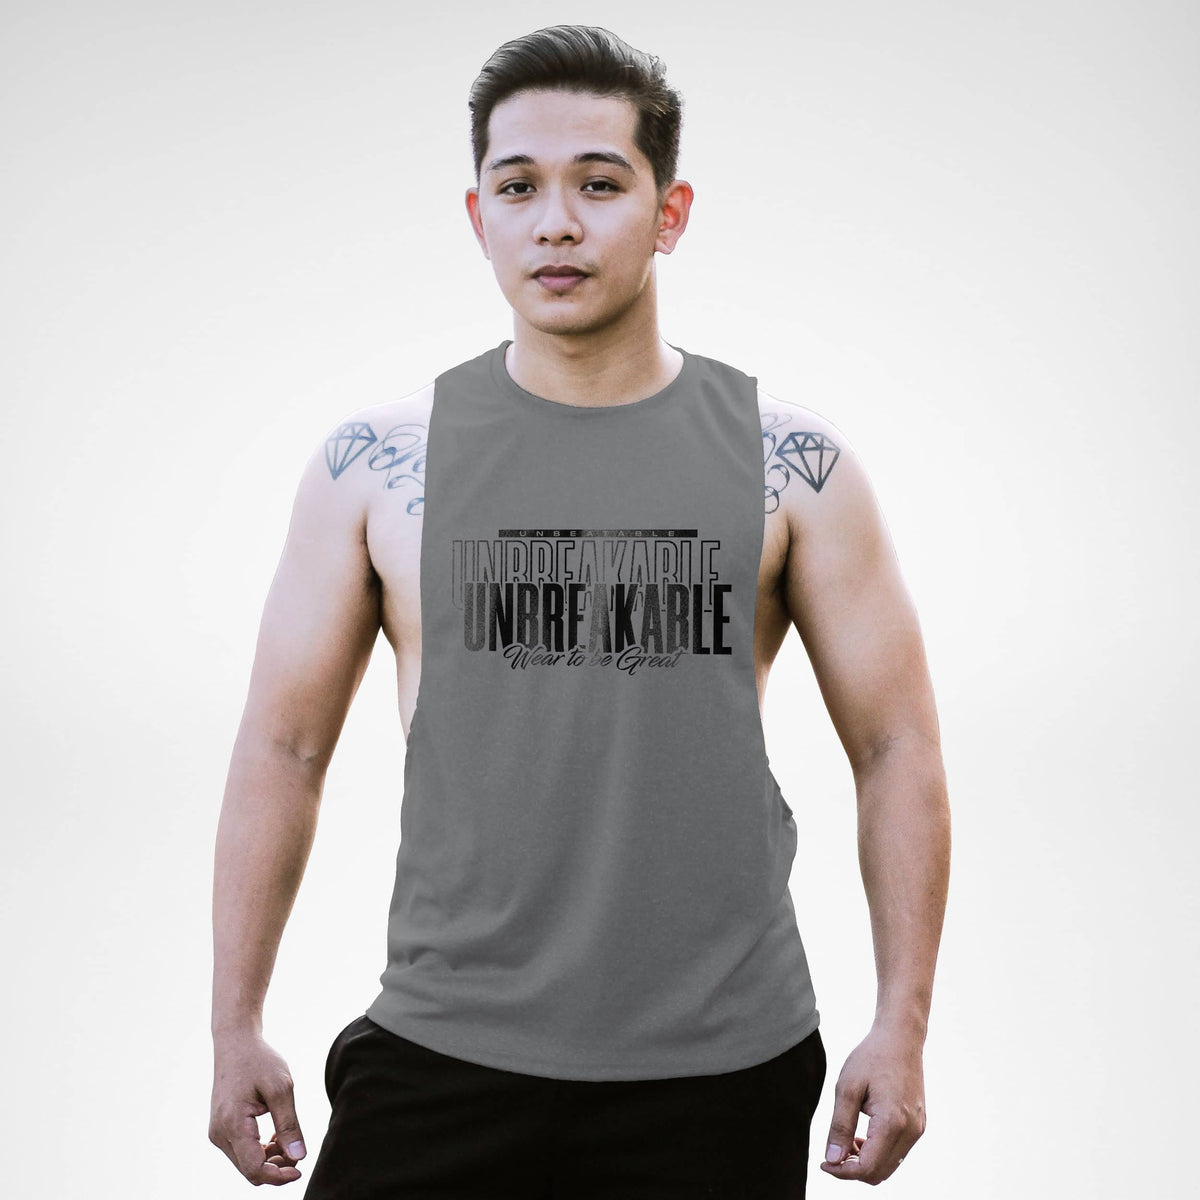 Unbeatable Unbreakable Wear To Be Great Openside Tank Top